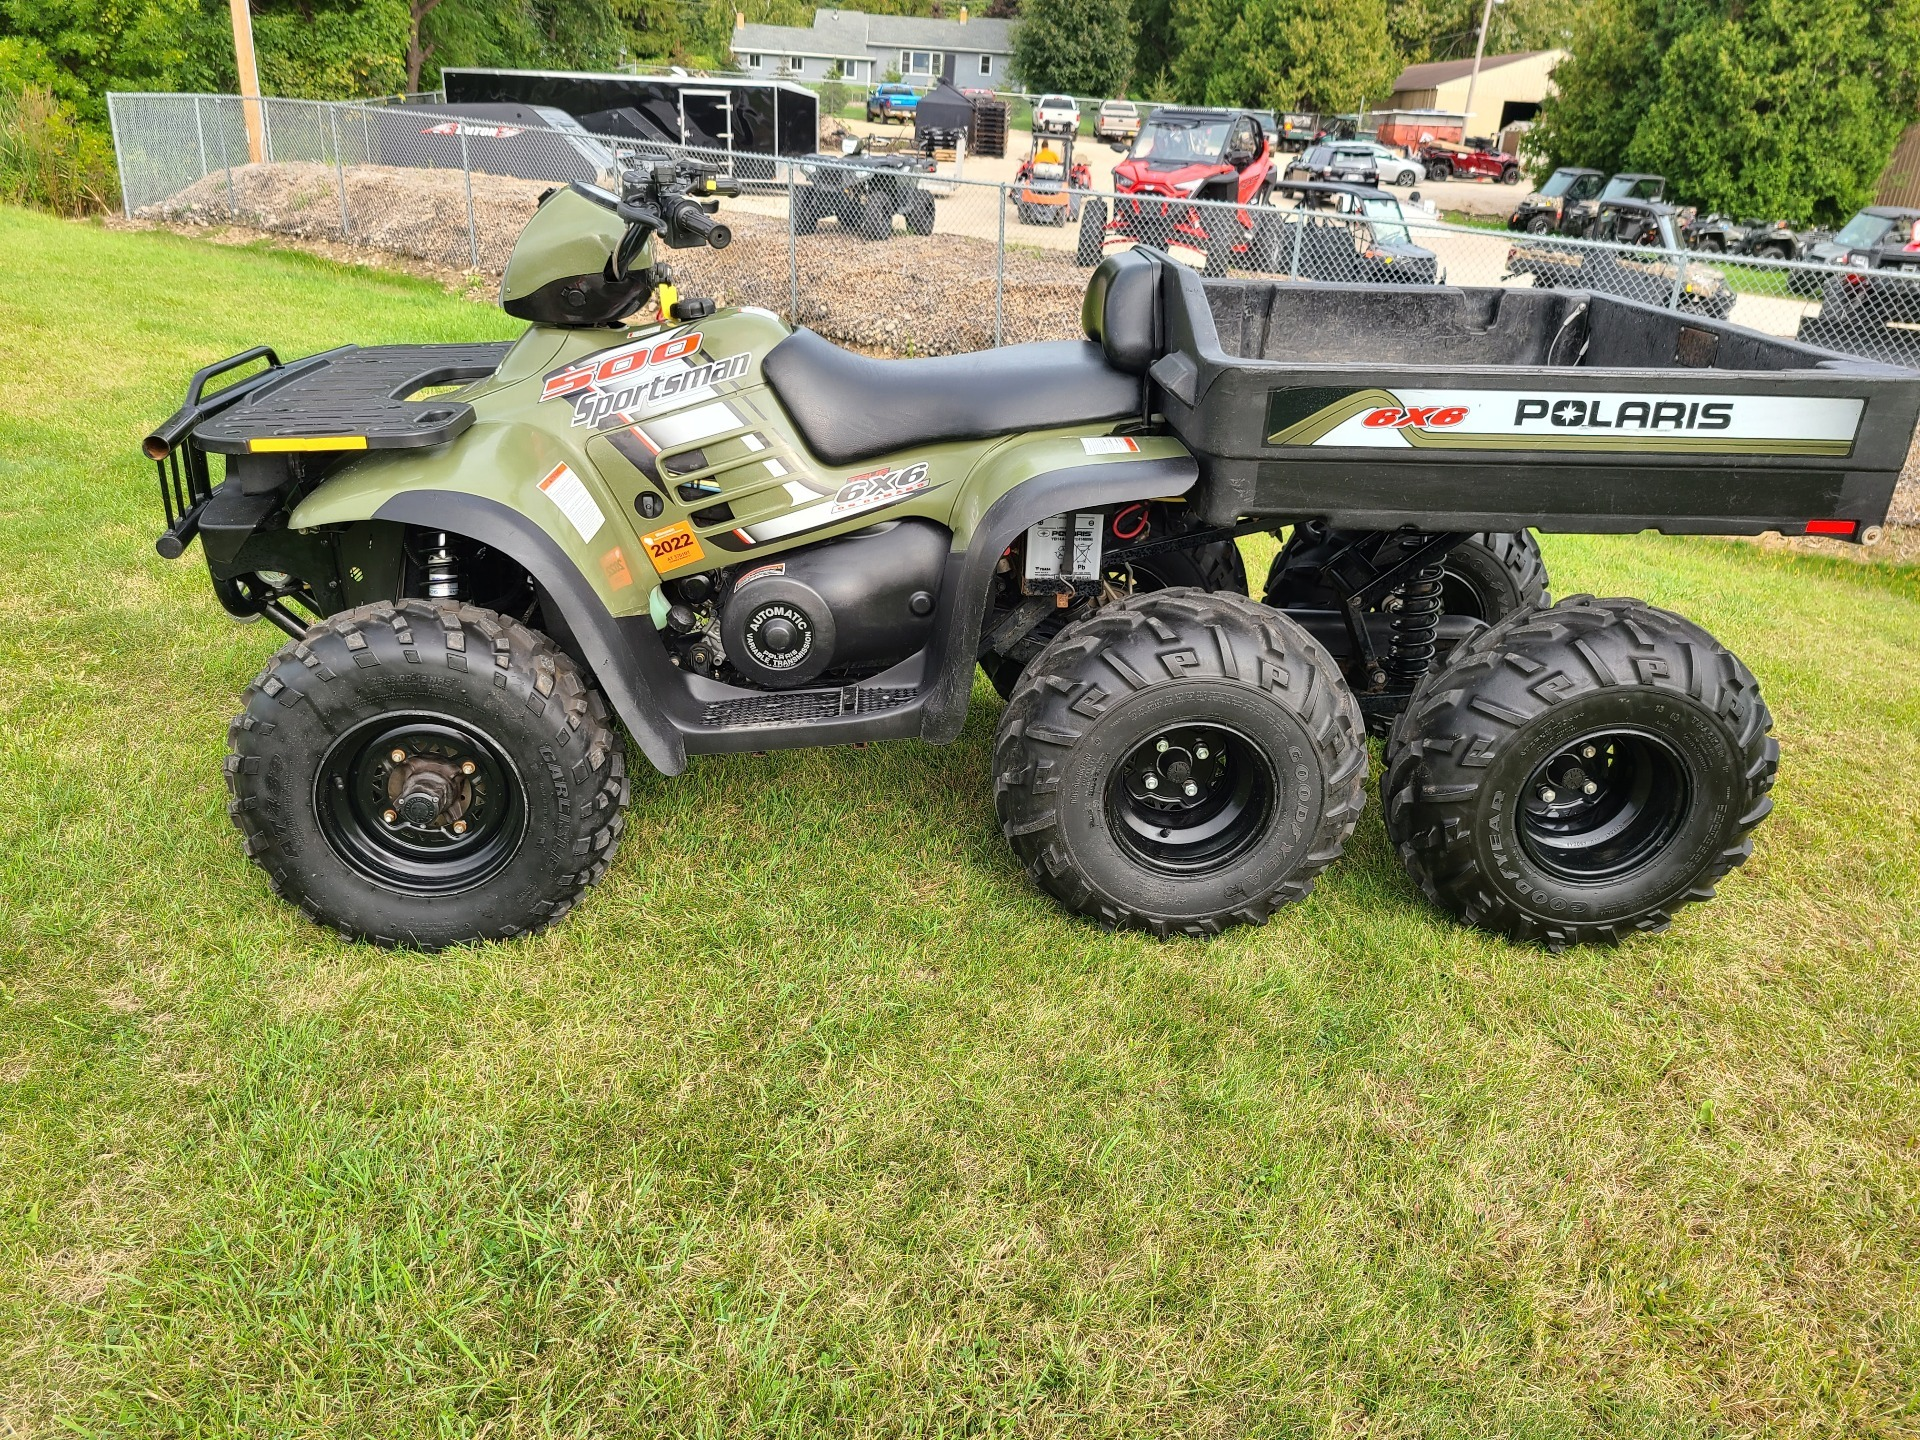 2004 Polaris Sportsman 6x6 in Fond Du Lac, Wisconsin - Photo 6